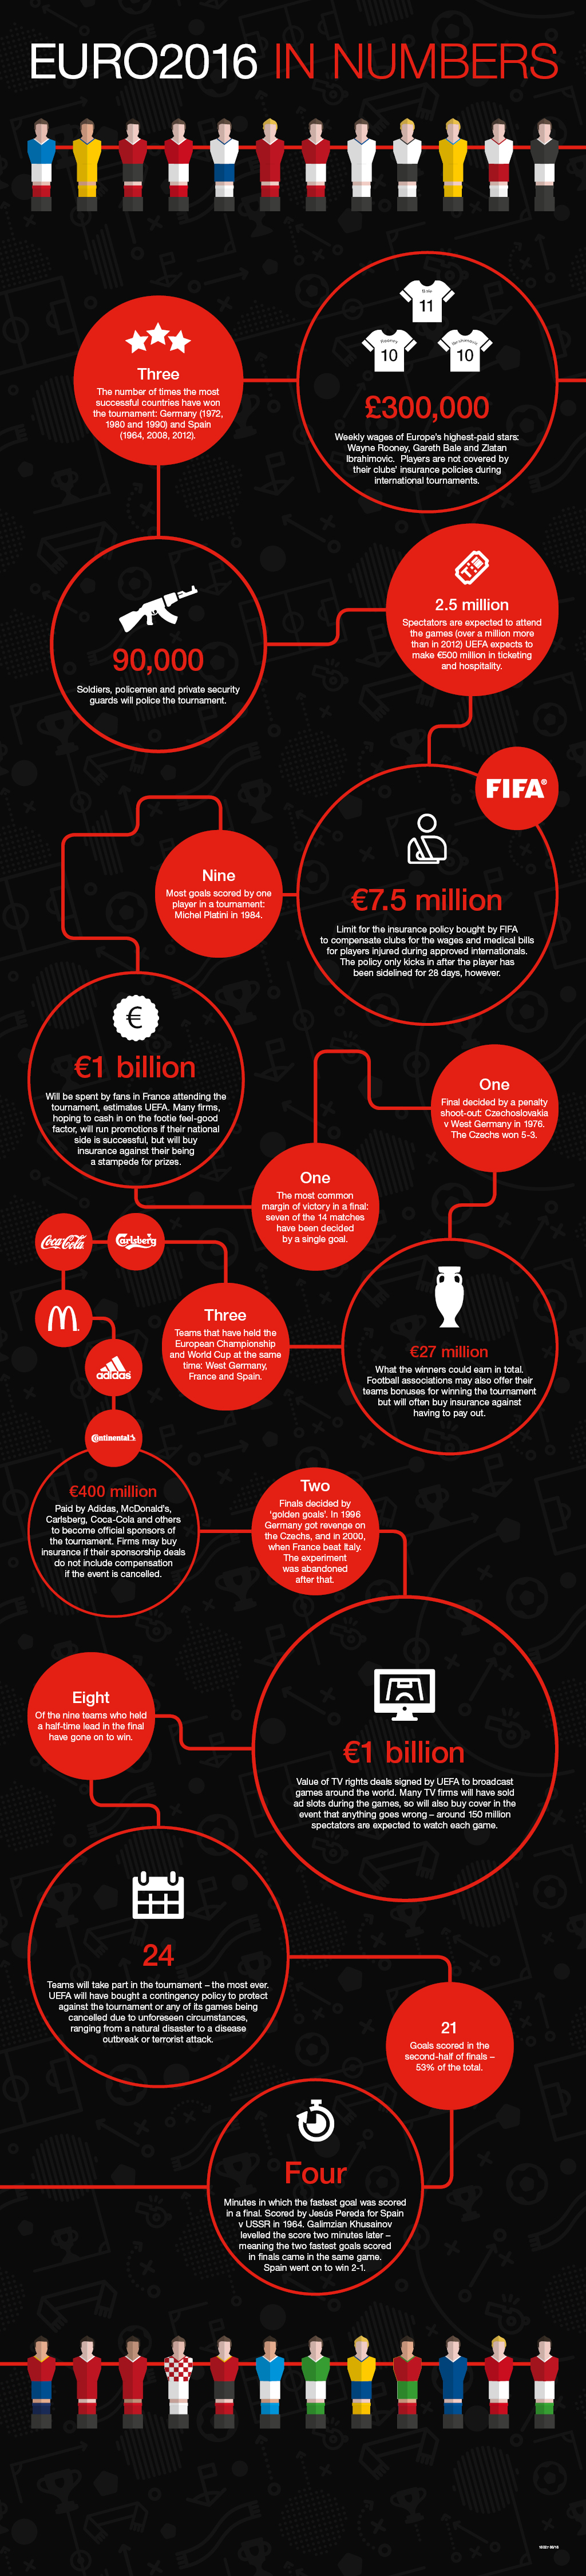 Infographic for the London Market website focusing on